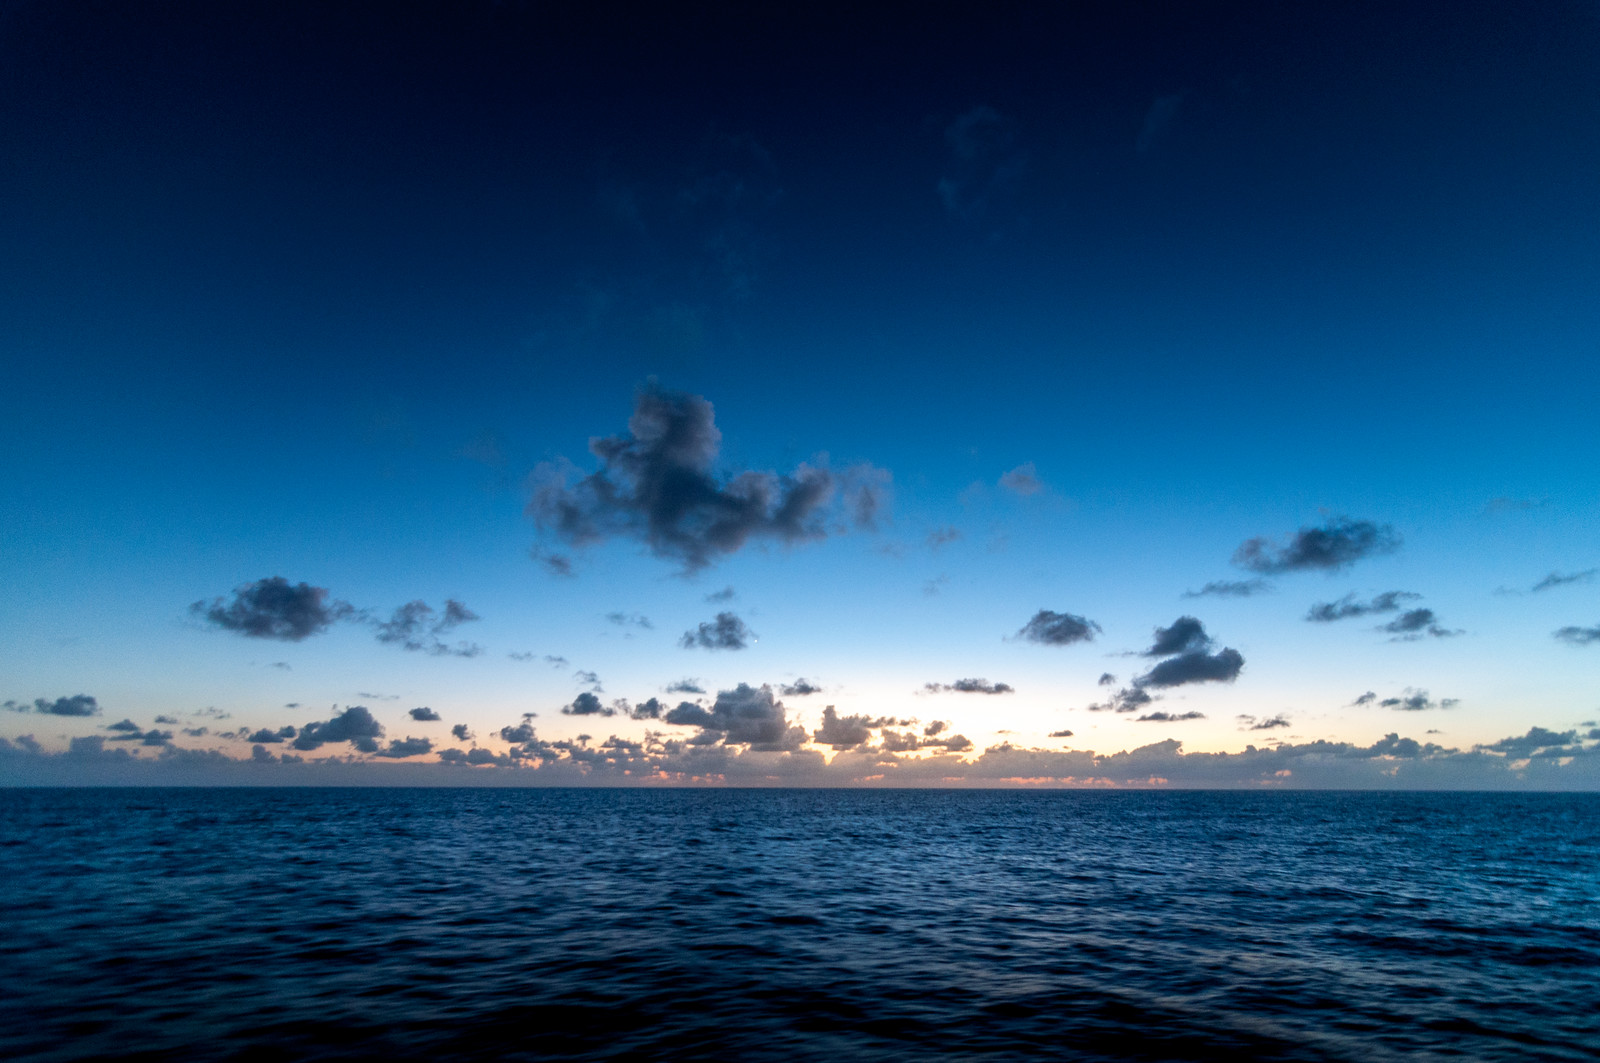 Working on improving my #sunset image capturing skills. This one was taken somewhere in the #caribbean <br /> #thepursuit to #createmore<br /> .<br /> .<br /> #nature #travel #explore #earth #seascape #picoftheday #adventure #fall #autumn #ocean #atlantic #clouds #landscape #cruising